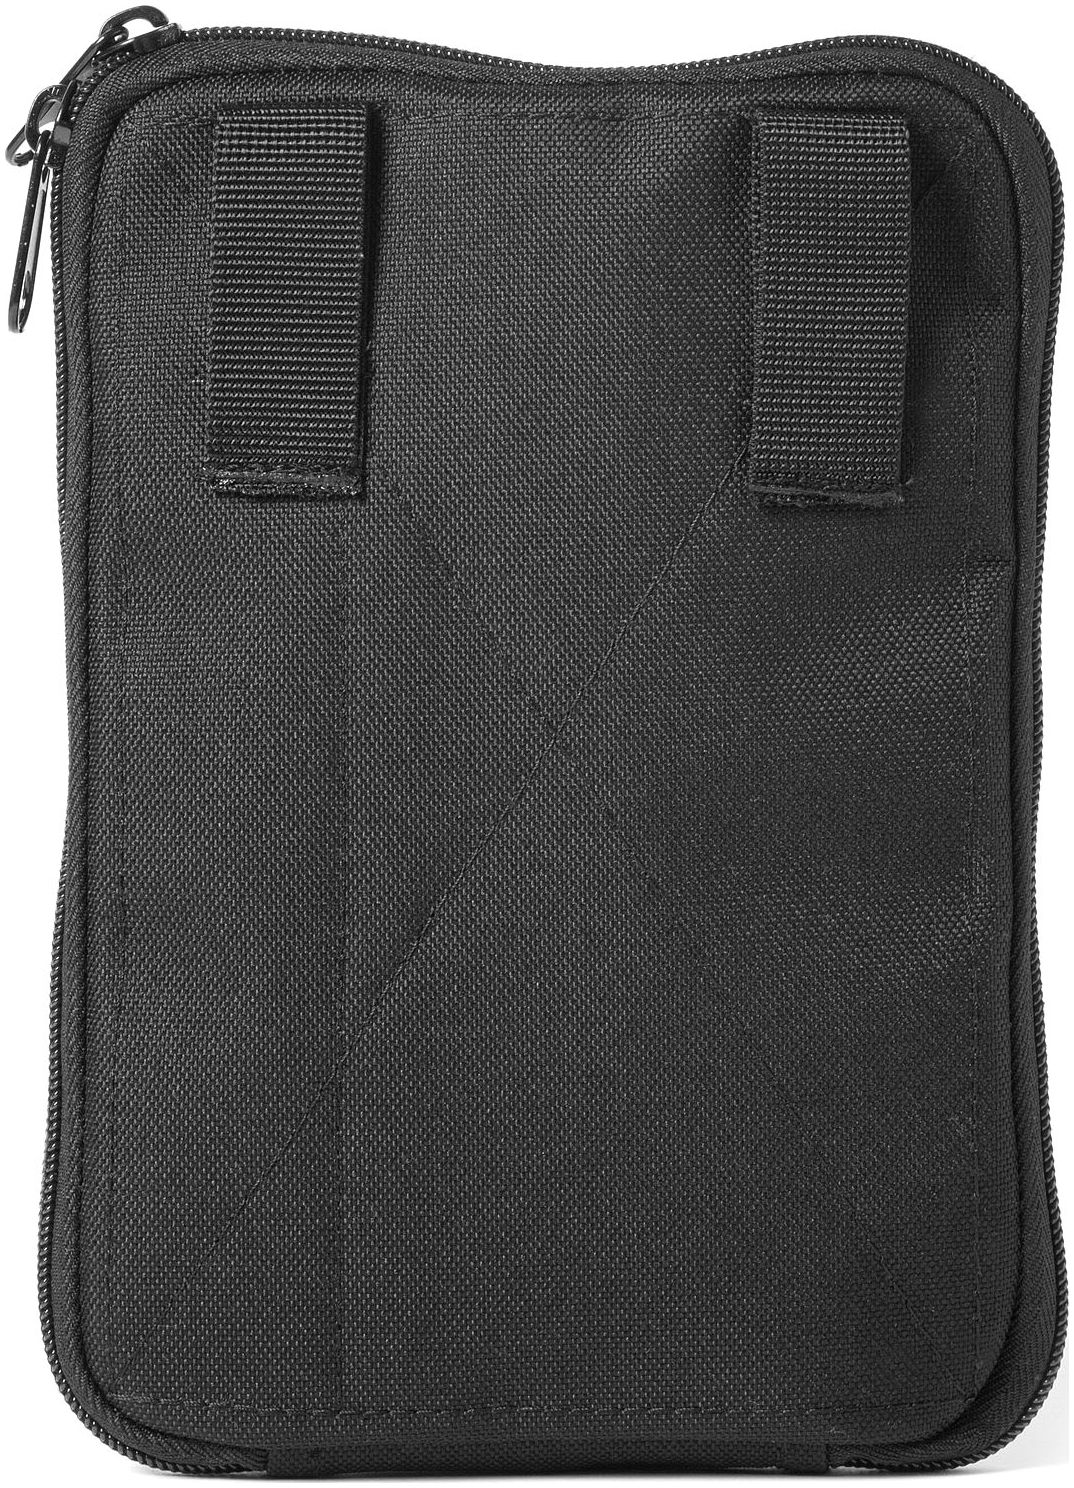 Belt Pouch With Concealed Gun Holster - Craft Holsters®